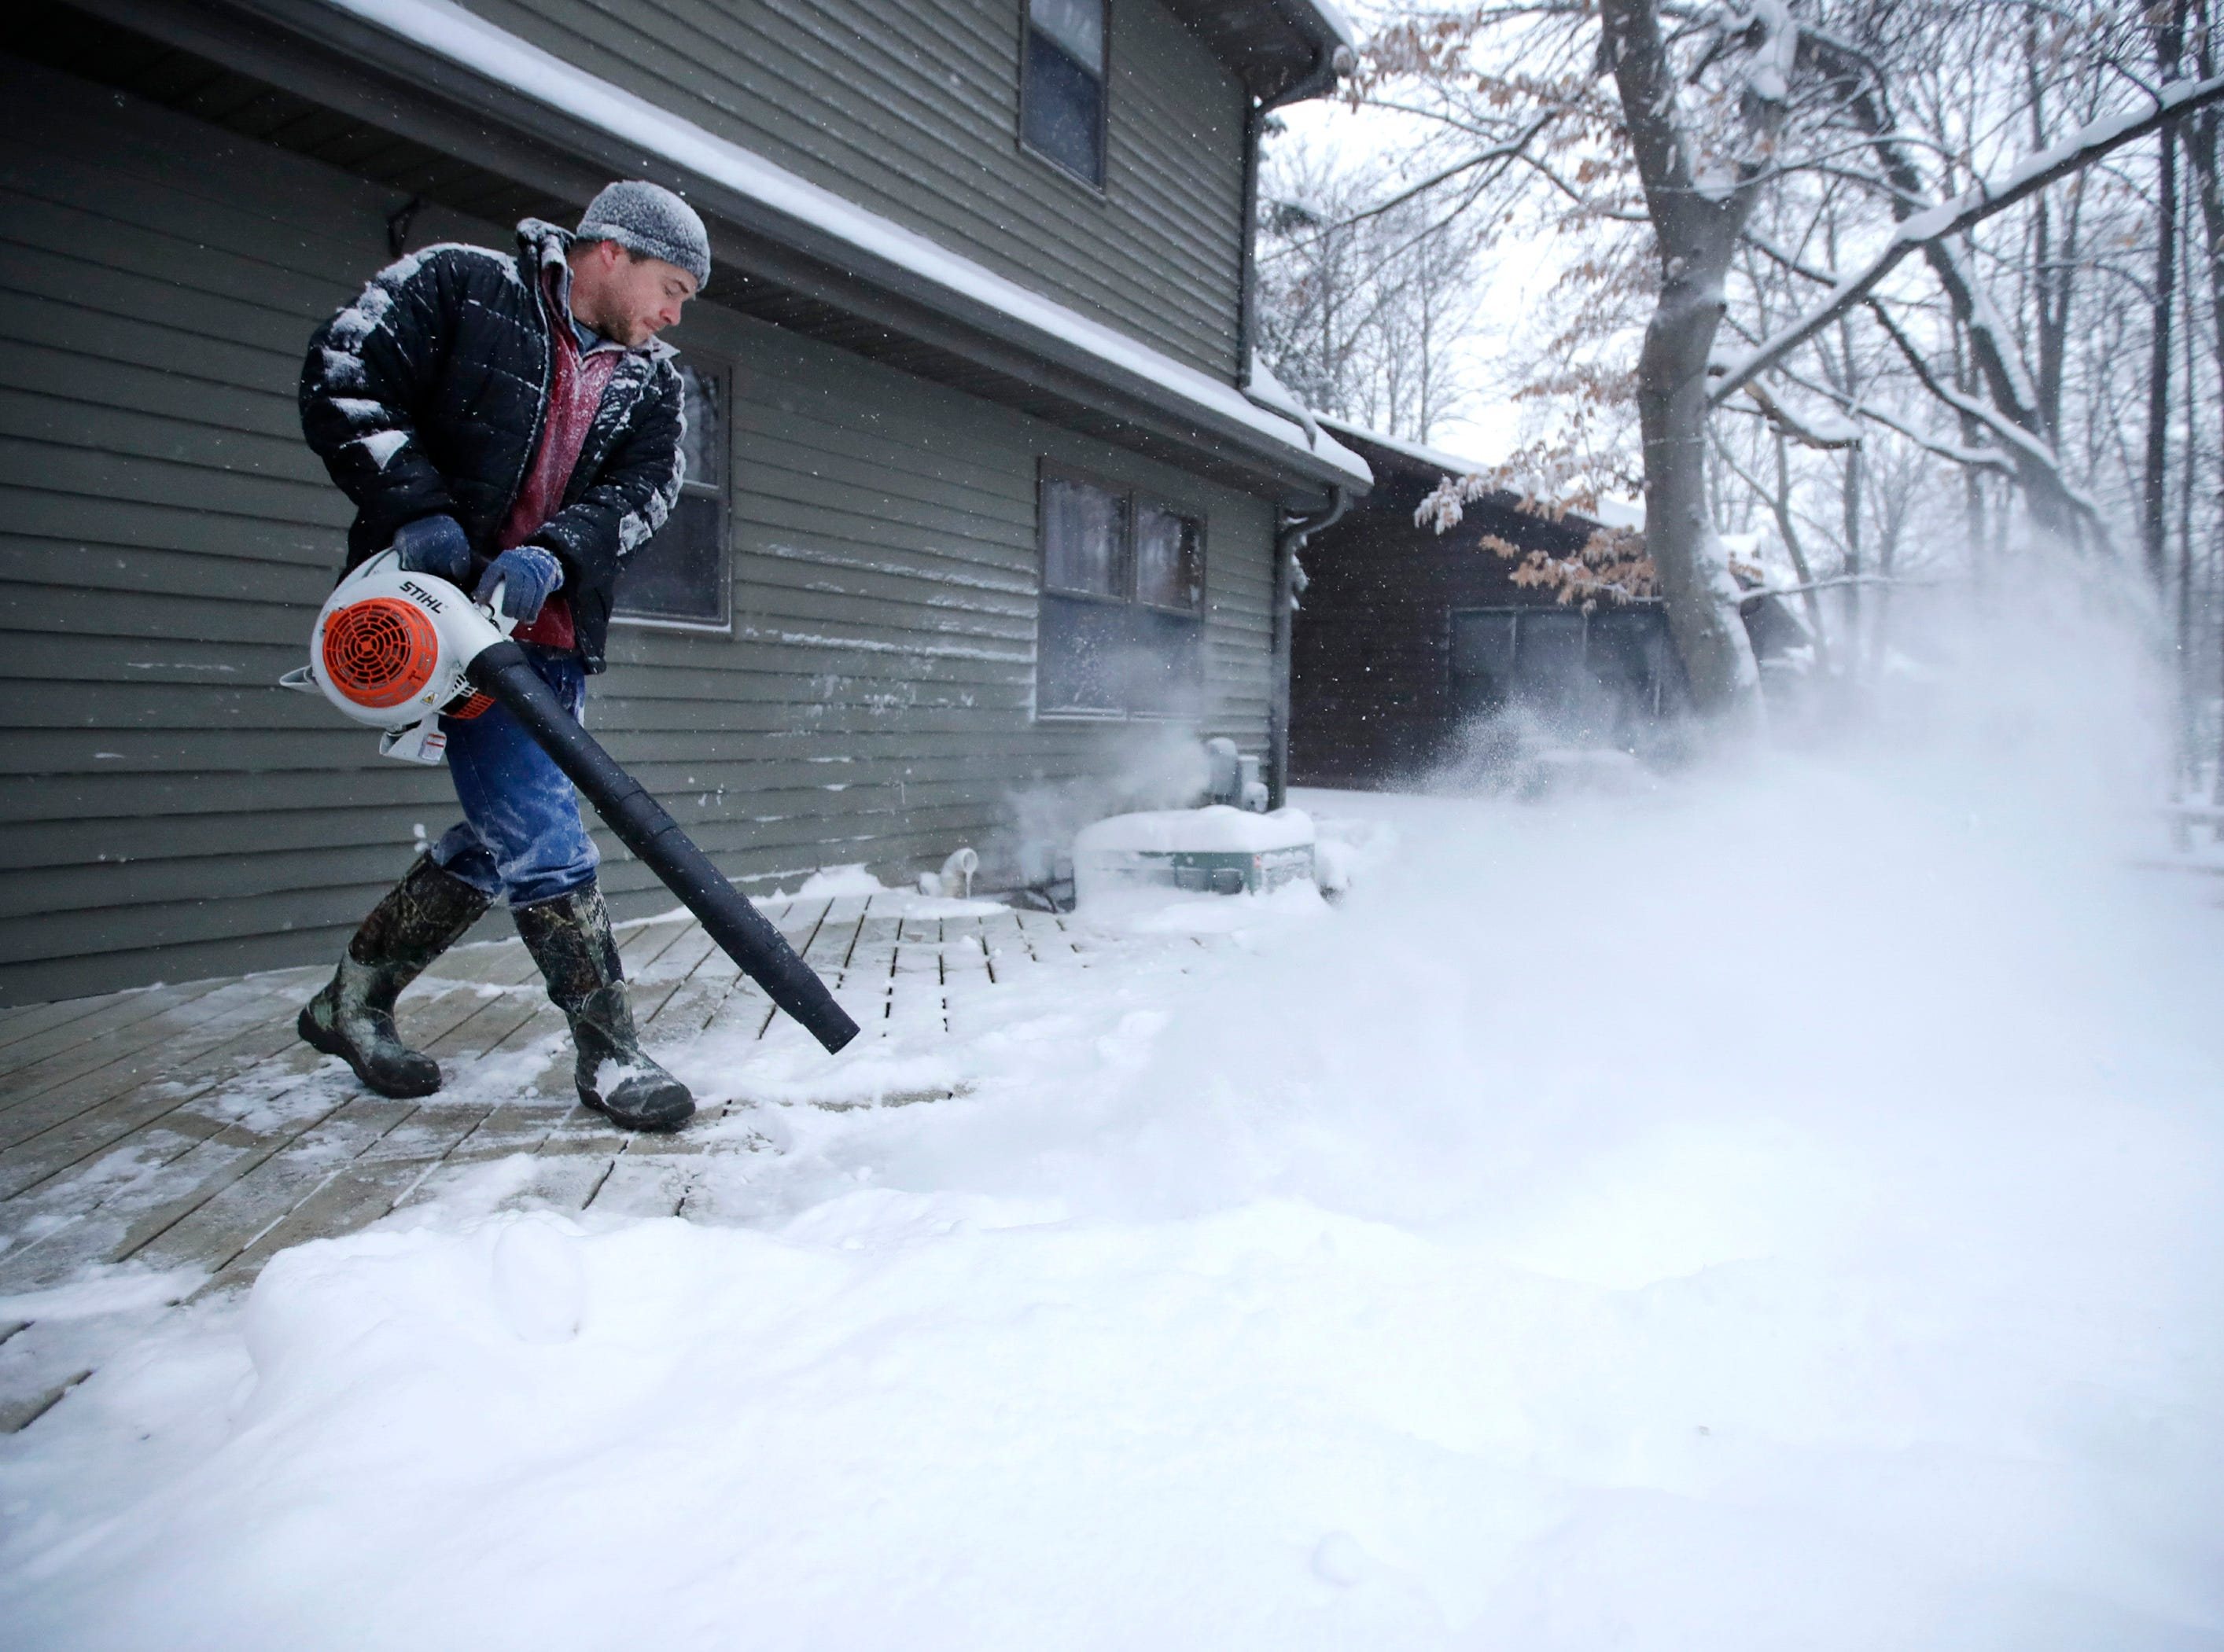 Kurt Zuleger, of Appleton, uses a leaf blower to clear the snow from his deck Monday, Jan. 28, 2019, in Appleton, Wis.